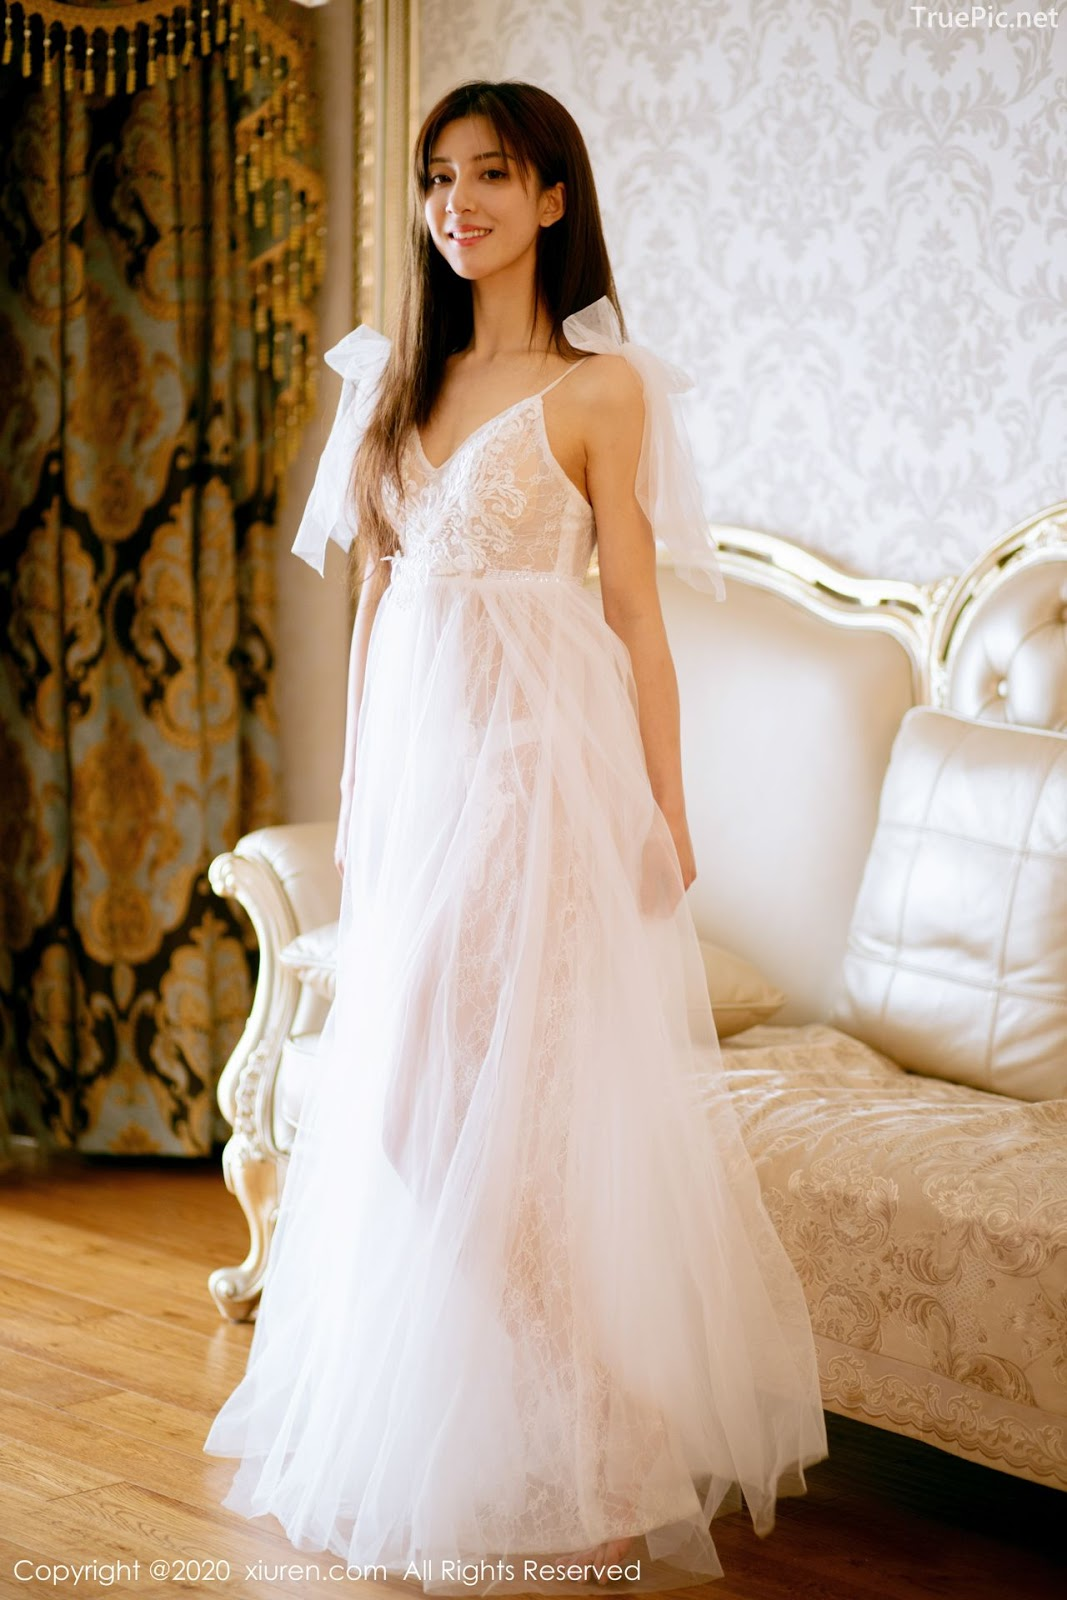 XIUREN No.1914 - Chinese model 林文文Yooki so Sexy with Transparent White Lace Dress - Picture 6